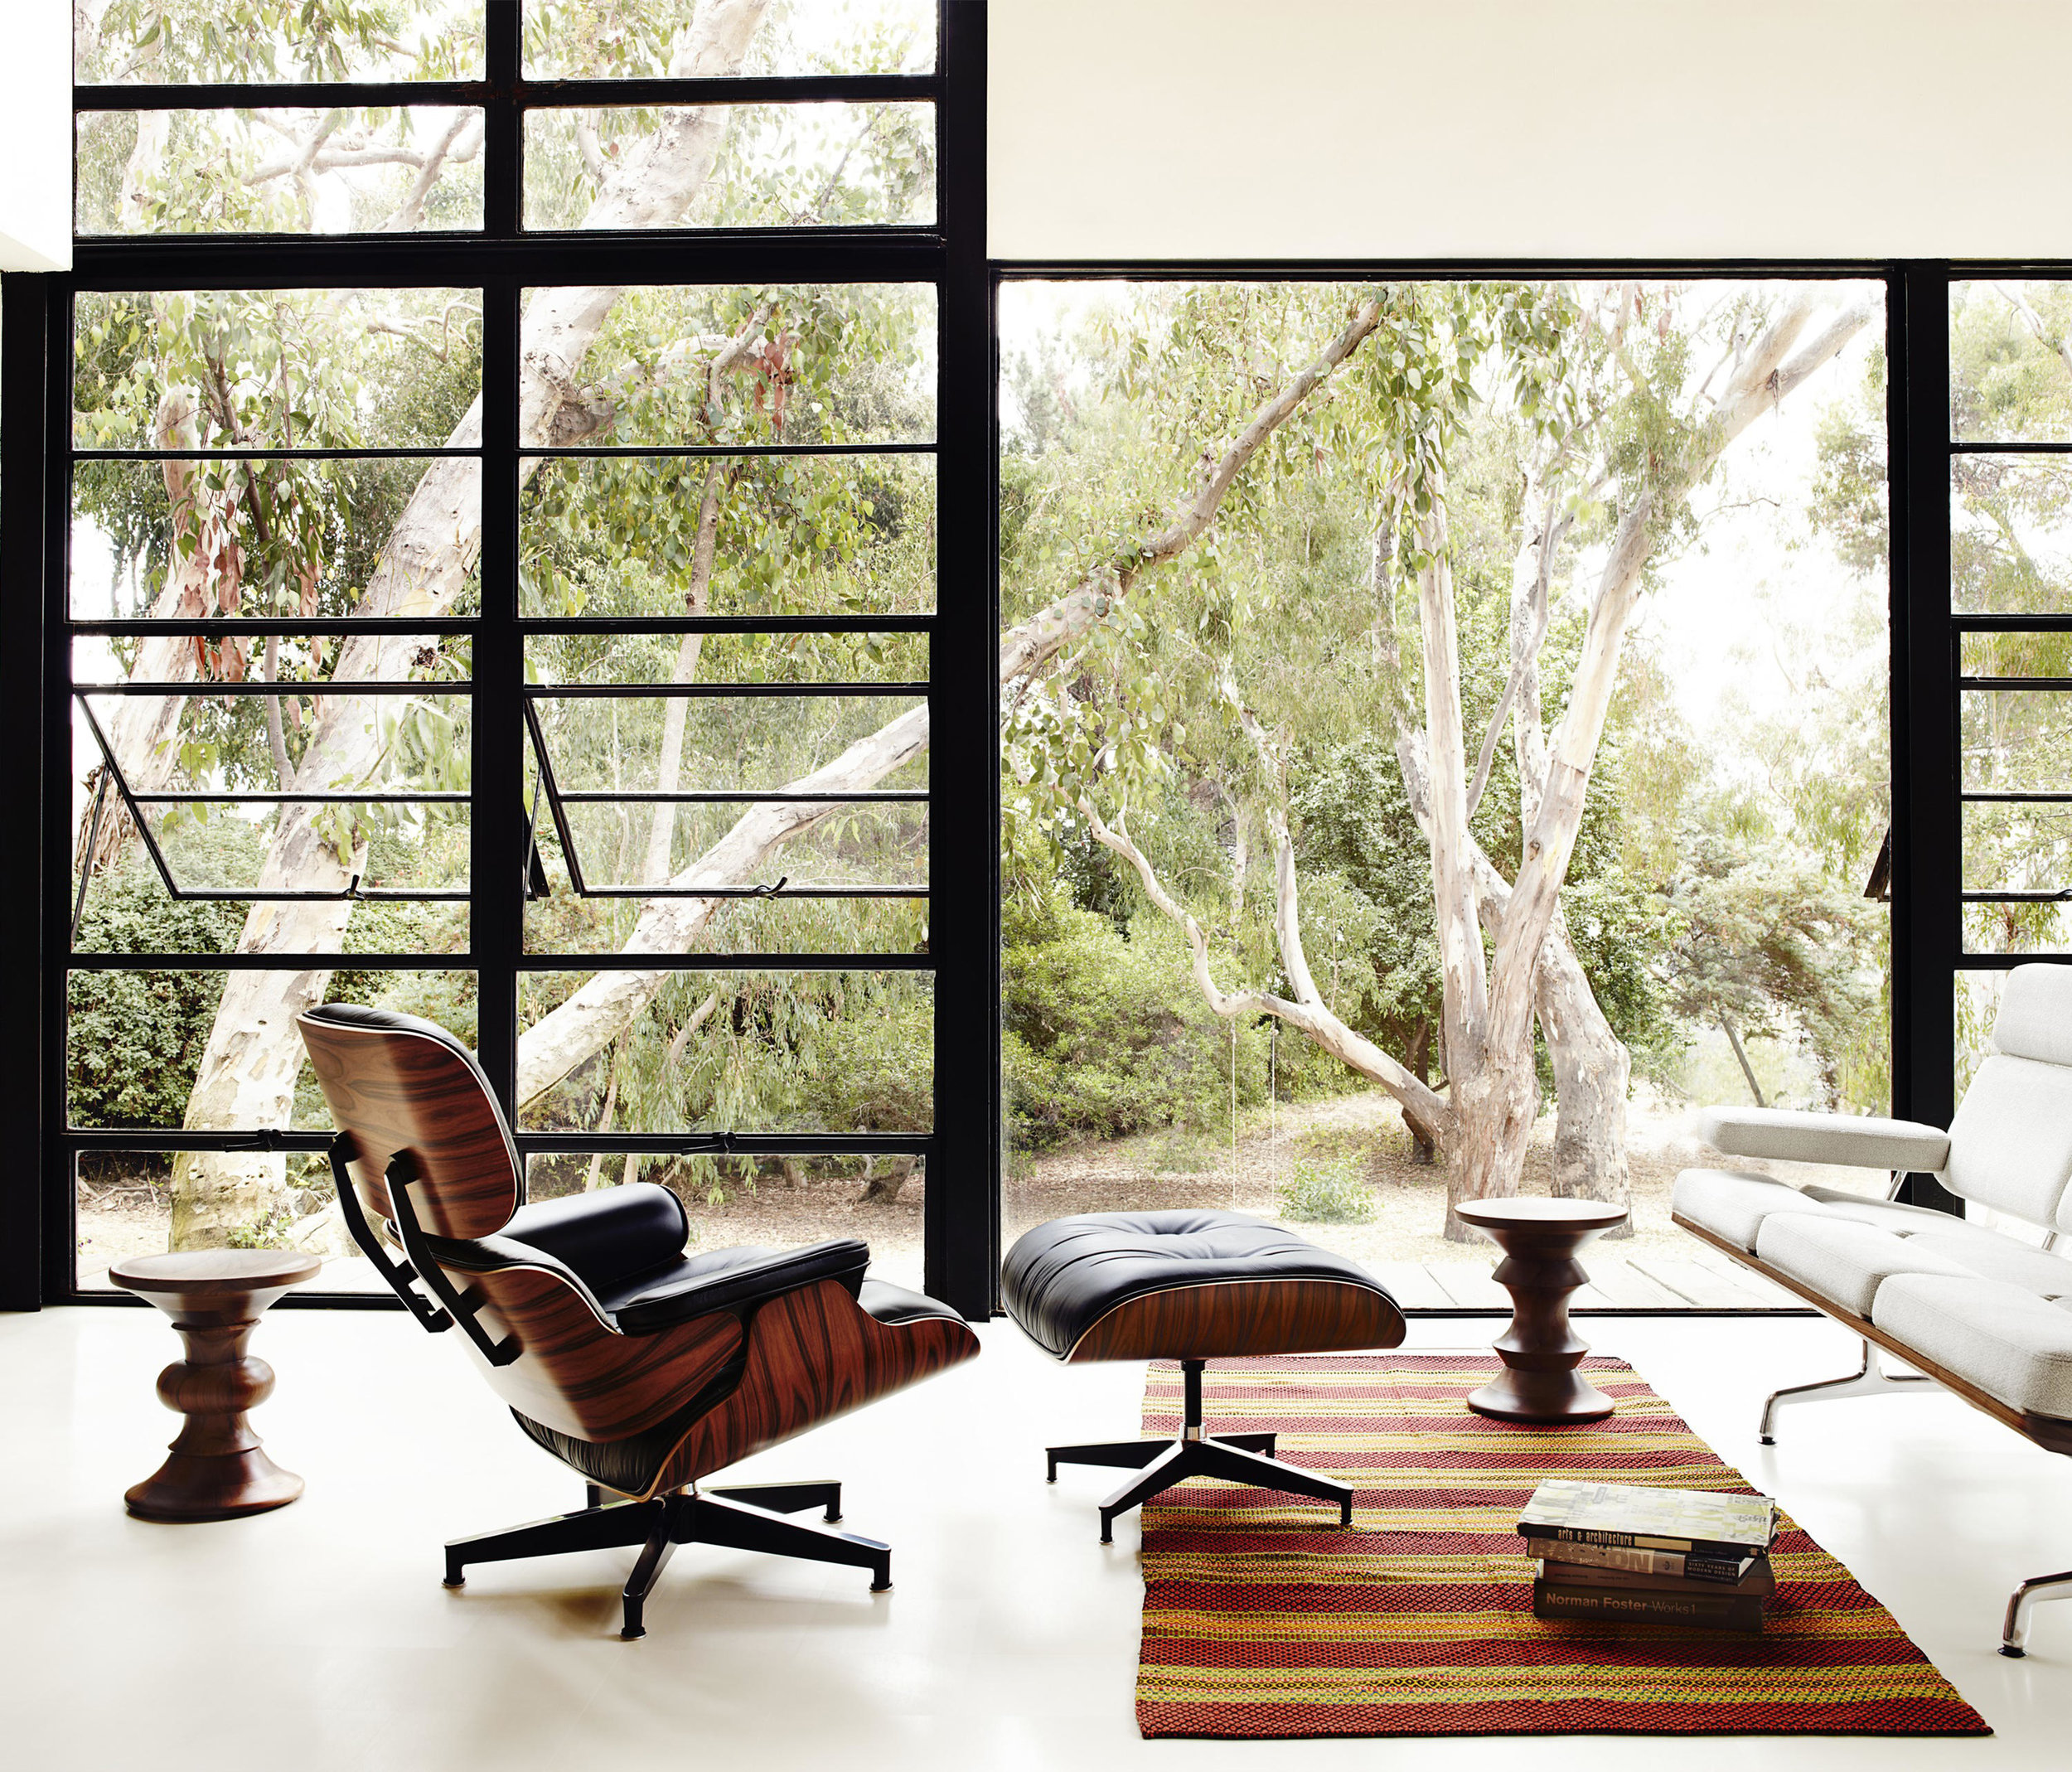 The Classic Lounge Chair by Charles Eames. Image:  Architonic.com